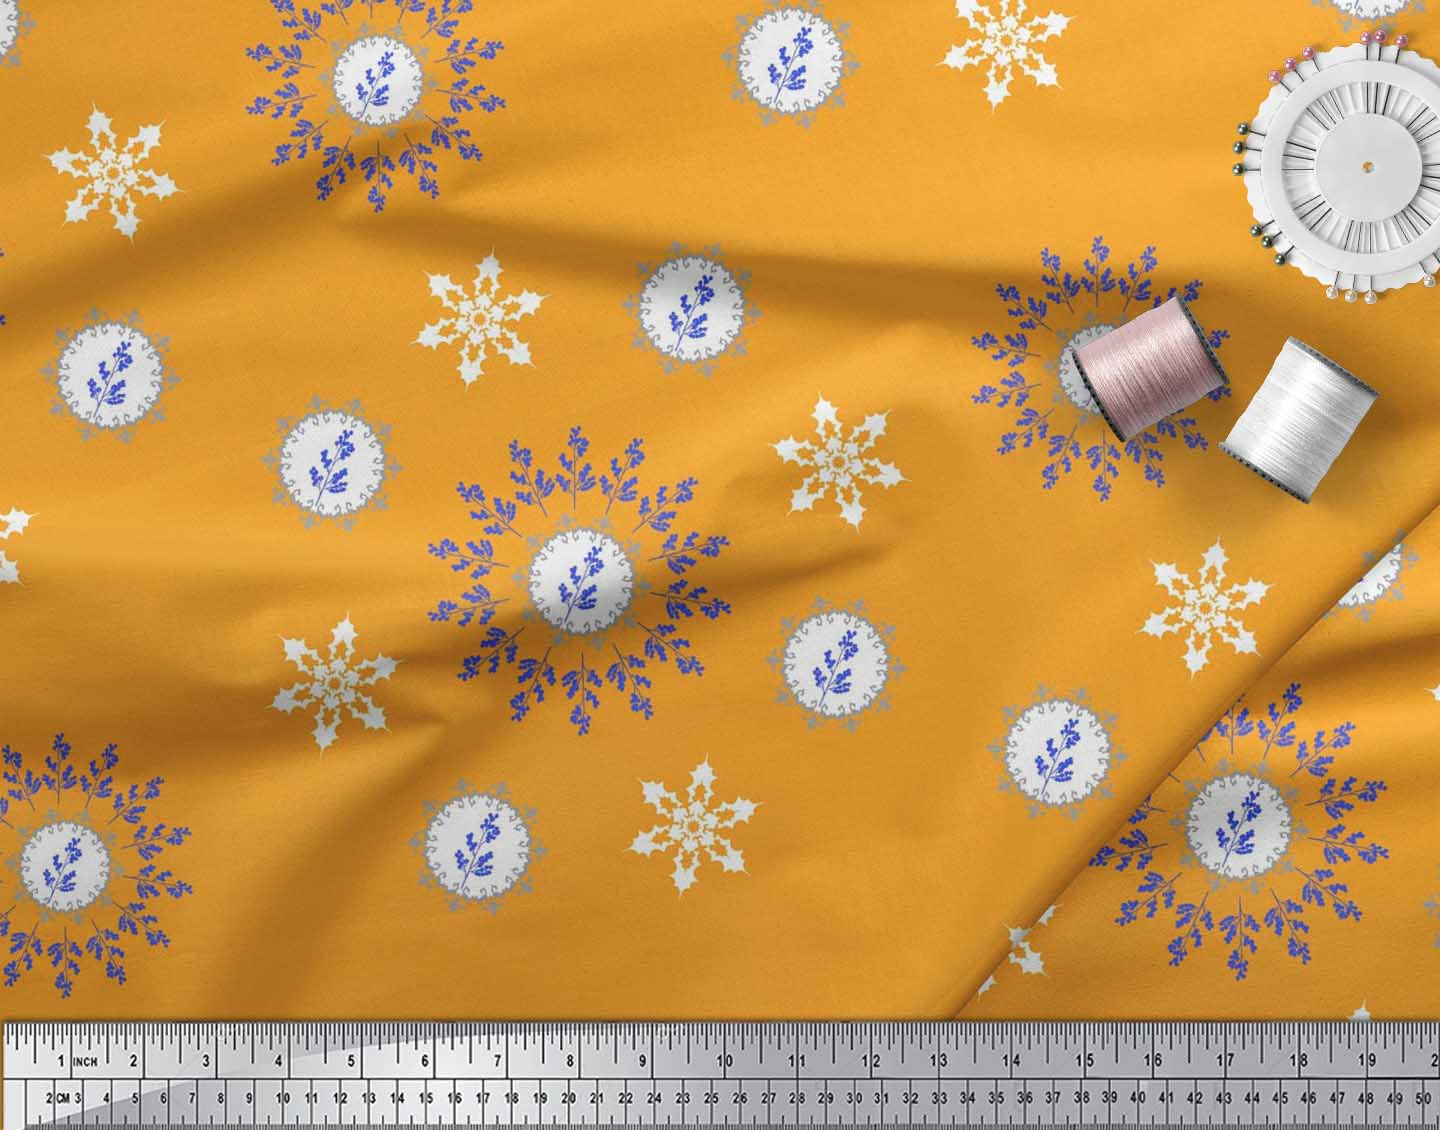 Soimoi-Fabric-Berries-amp-Damask-Decorative-Printed-Craft-Fabric-bty-DC-513A thumbnail 9